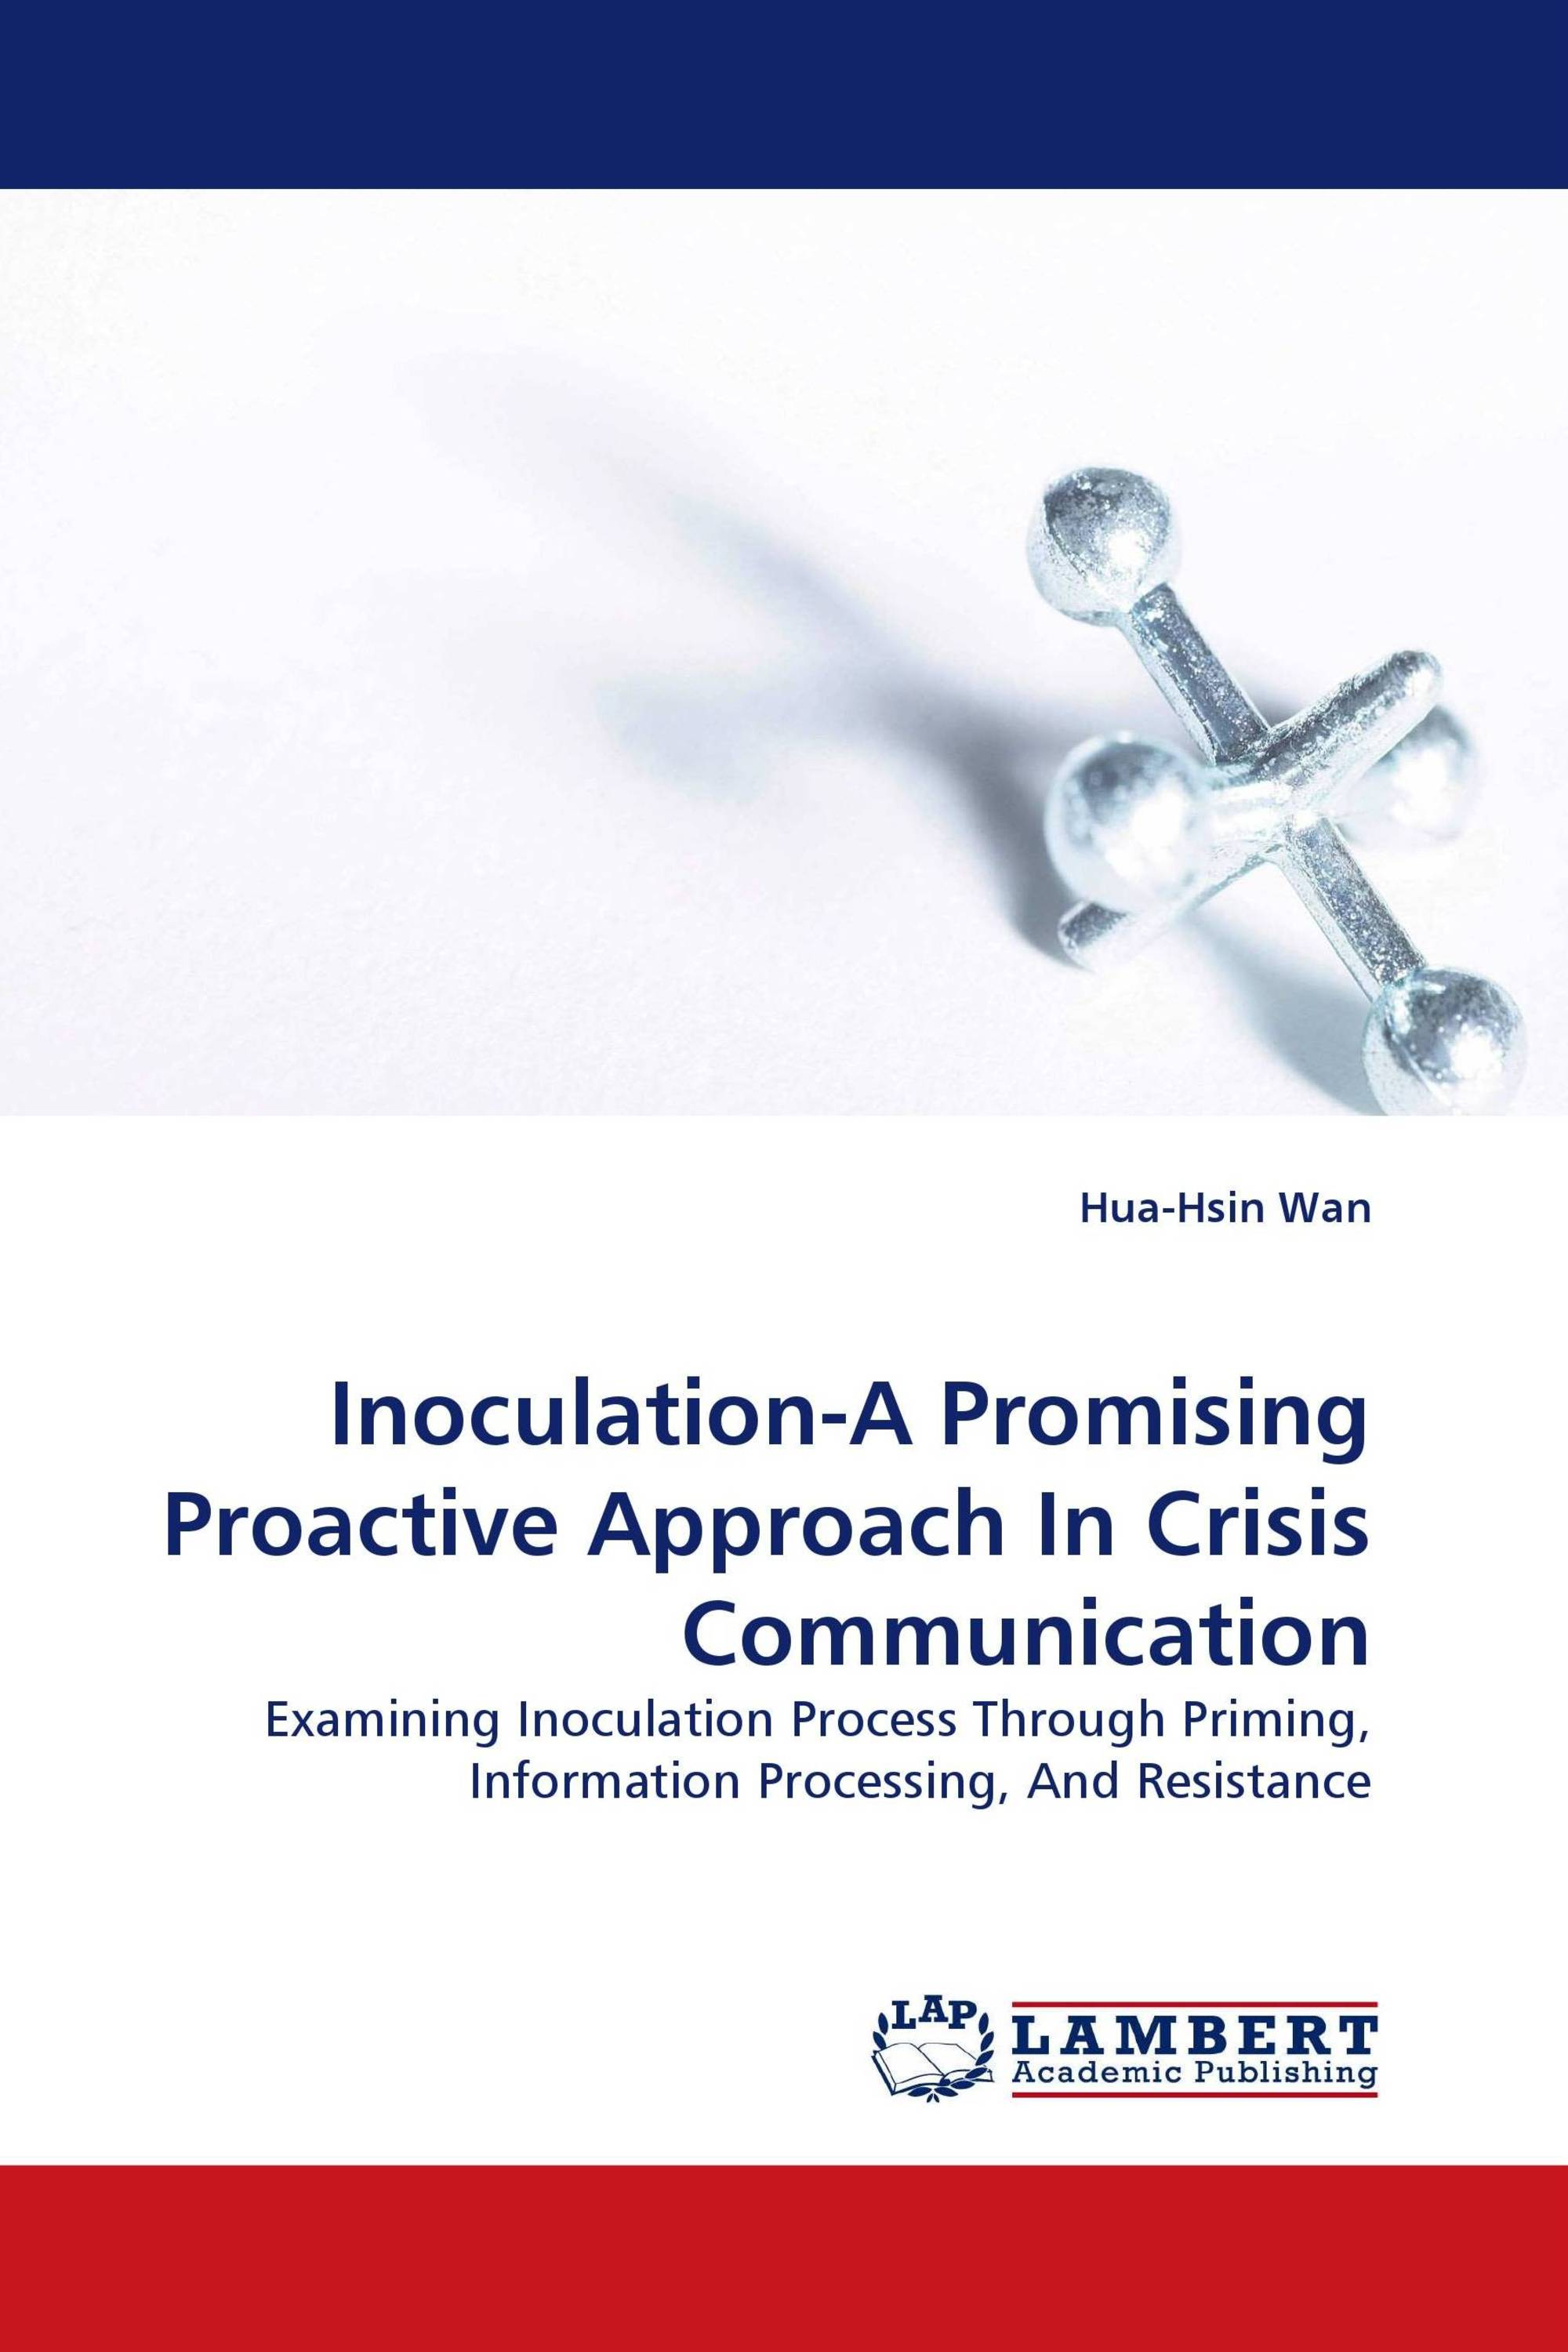 Inoculation-A Promising Proactive Approach In Crisis Communication